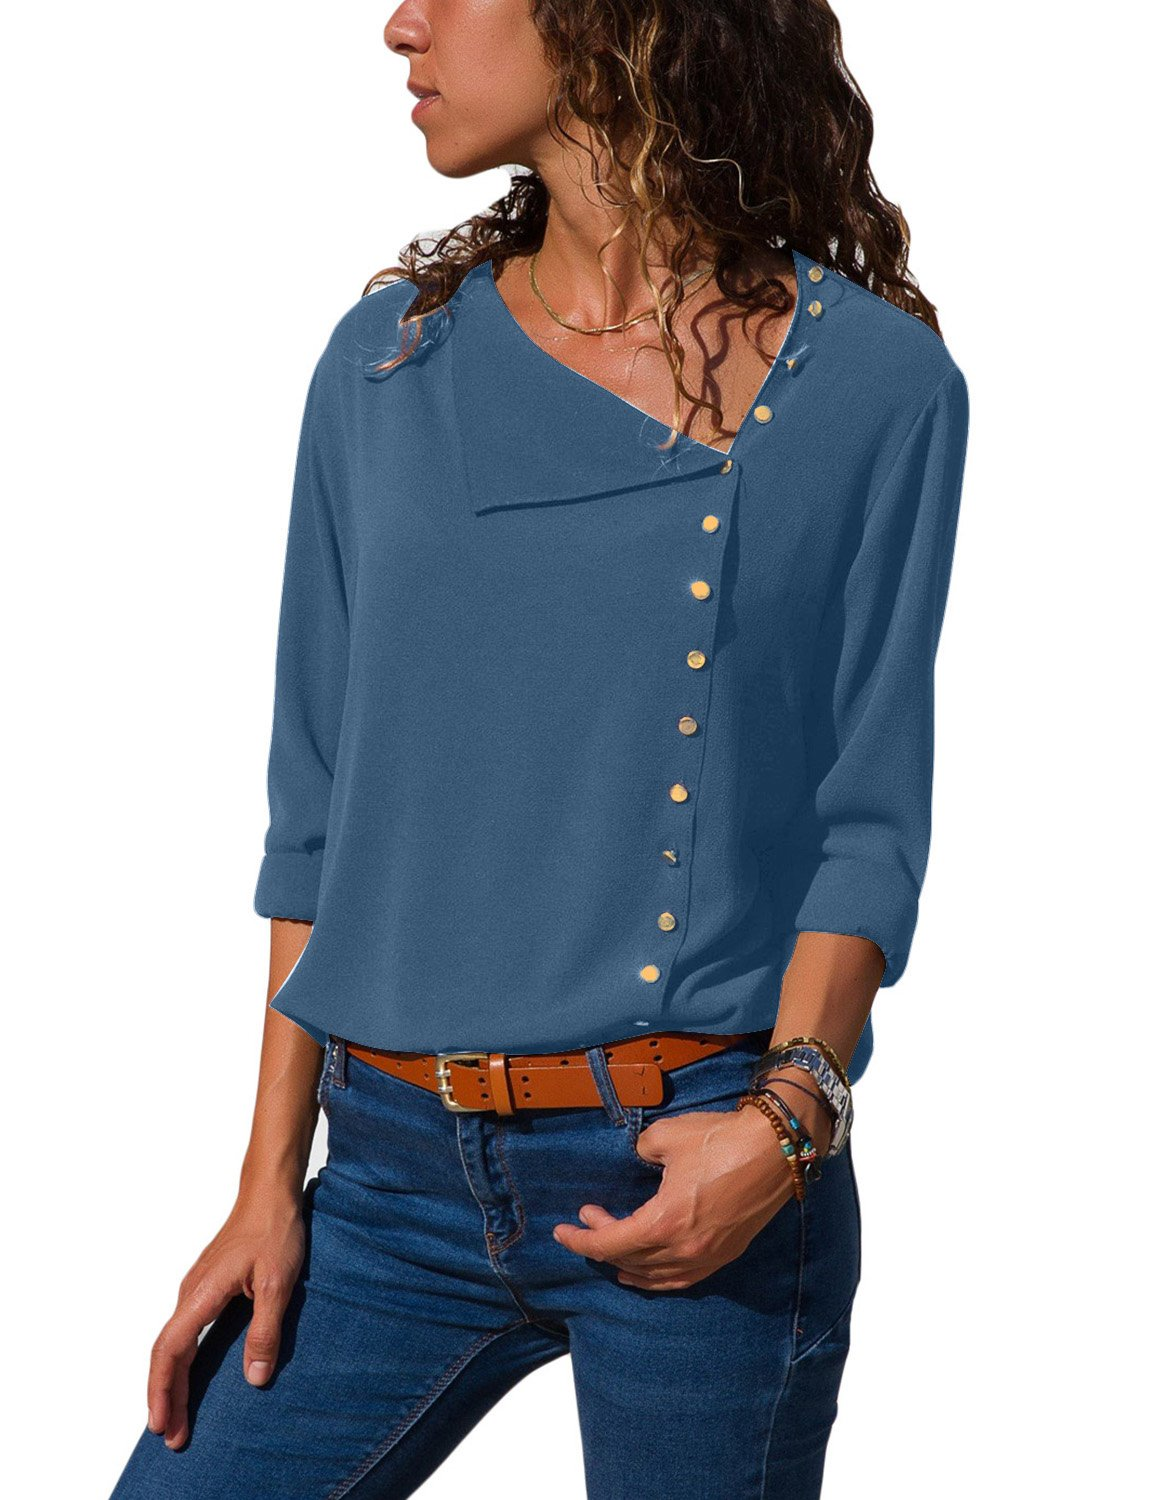 luvamia Women's Blue Side Buttons Shirt Casual Long Sleeve Chiffon Tops Solid Blouse Size M(US 8-10) by luvamia (Image #1)